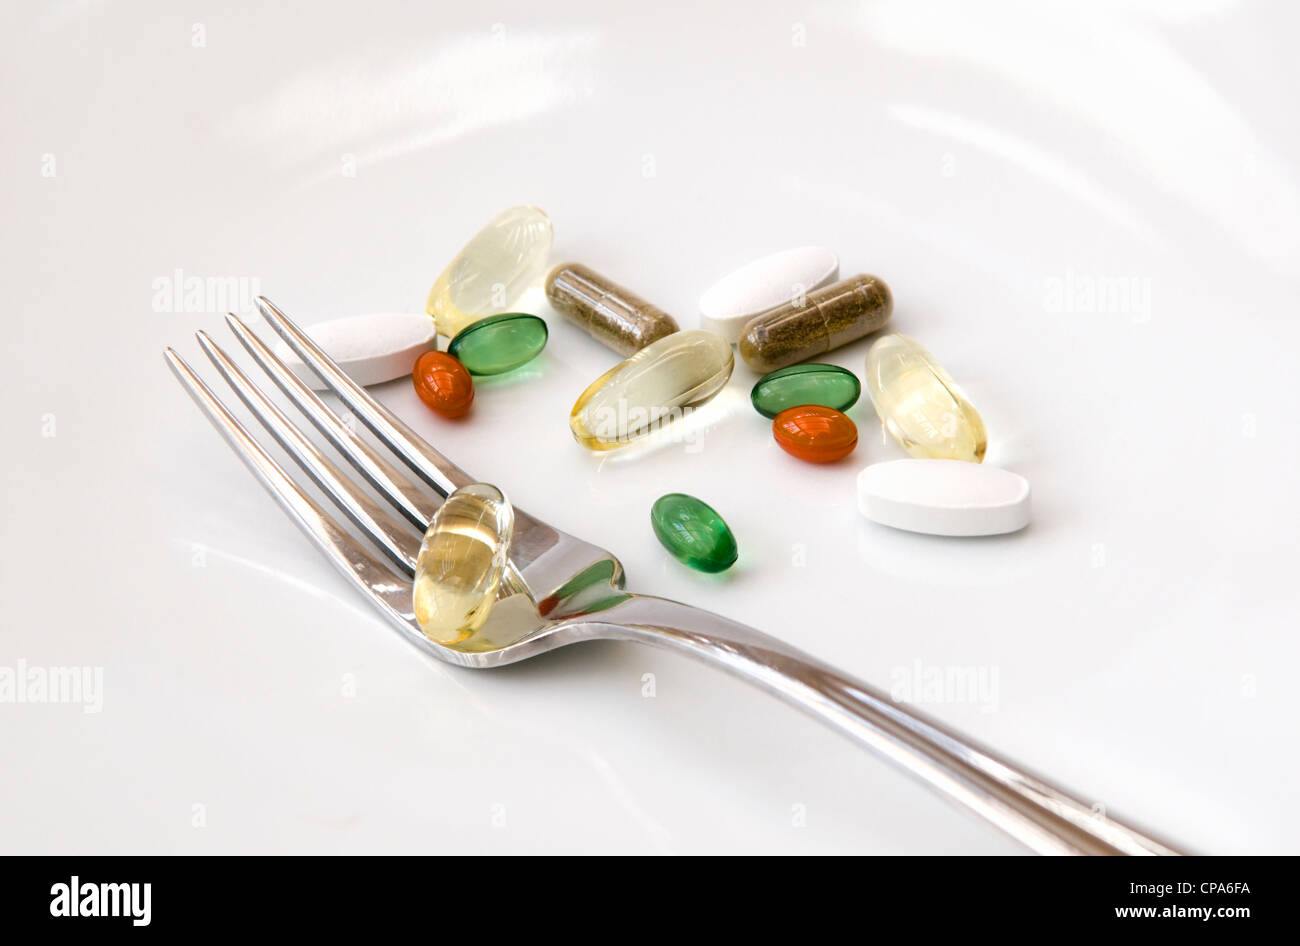 Selection of vitamins (omega 3, Co-enzyme Q10, peppermint, chondroitin, ginkgo and ginseng) with fork on white background. - Stock Image